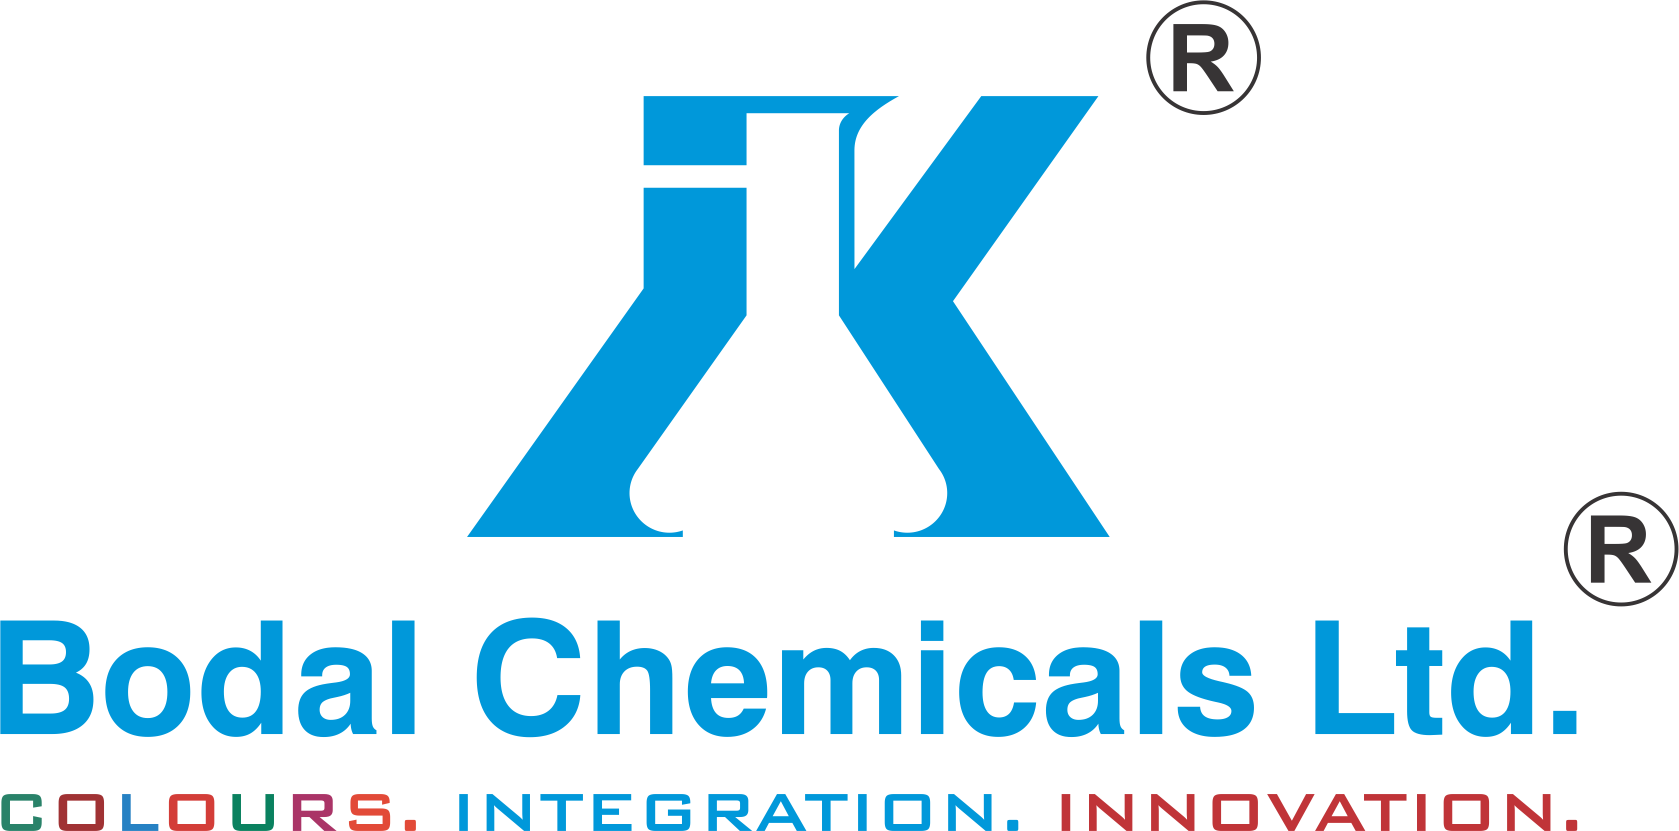 chemical pesticides Find here details of companies selling chemical pesticide, for your purchase requirements get latest info on chemical pesticide, suppliers, manufacturers.